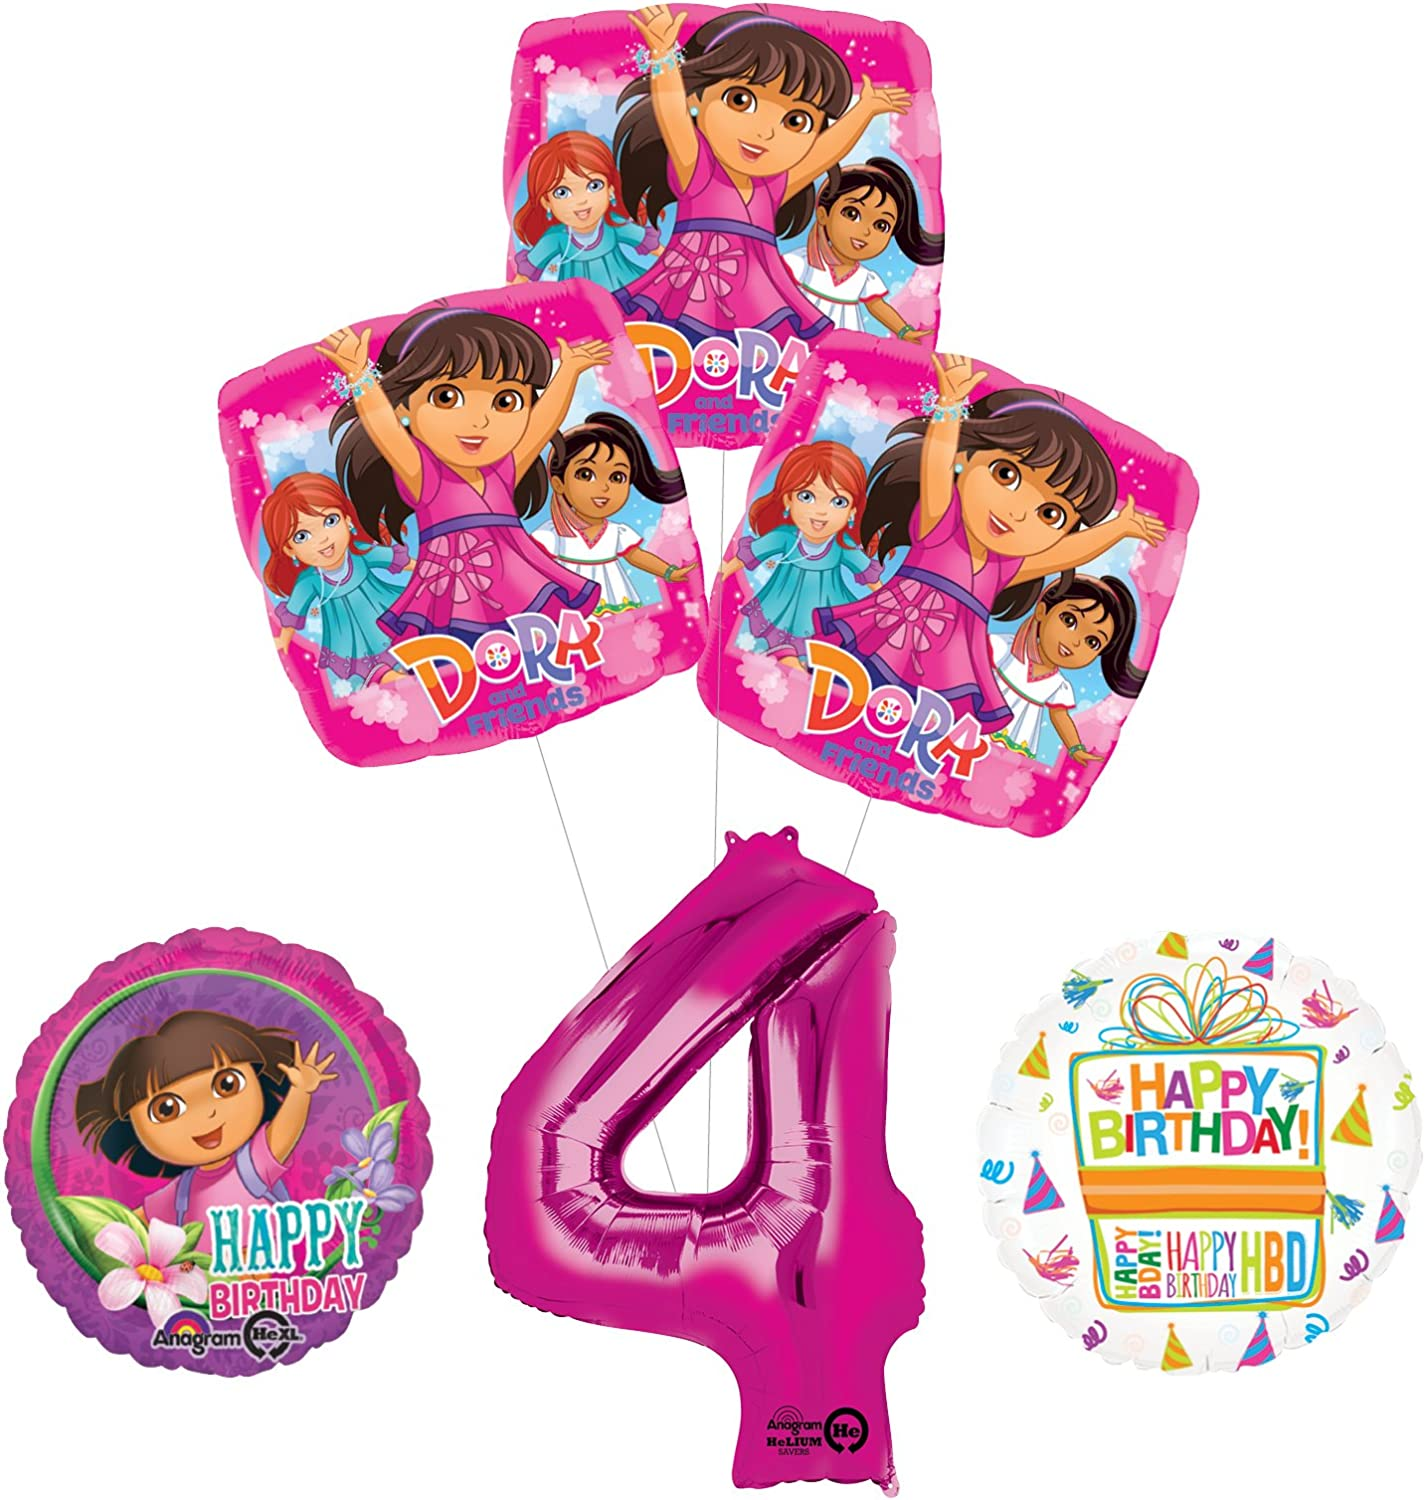 Dora the Explorer 4th Birthday Party Supplies and Balloon Bouquet Decorations